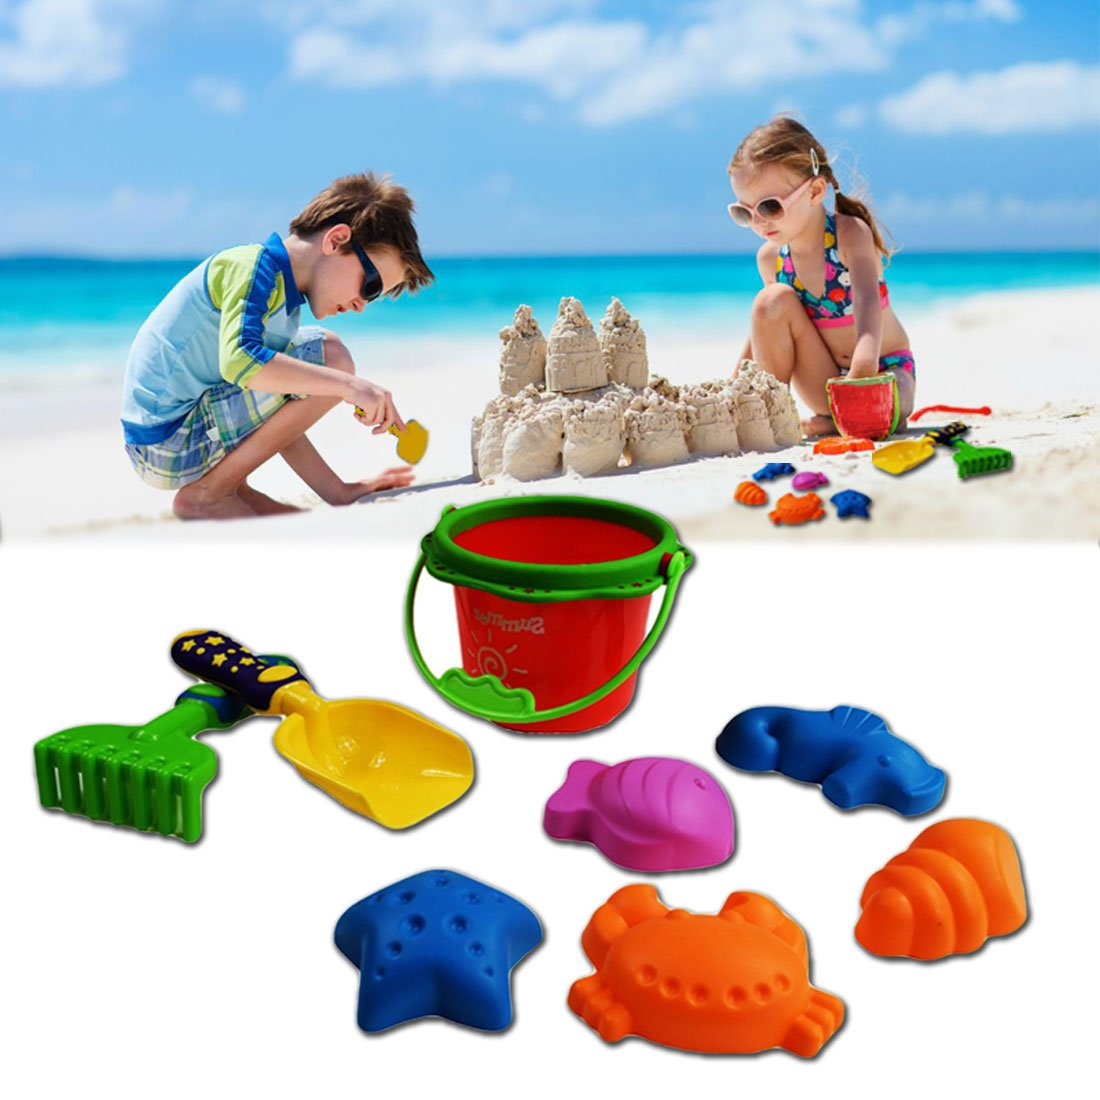 8 Piece Sand Play Set - Bucket, Shovel, Rake, and Sea Critter Molds, 8 Piece Colorful Compact Kit, Perfect for Beach, Water, Sandbox or Sand Table, by Dazzling Toys